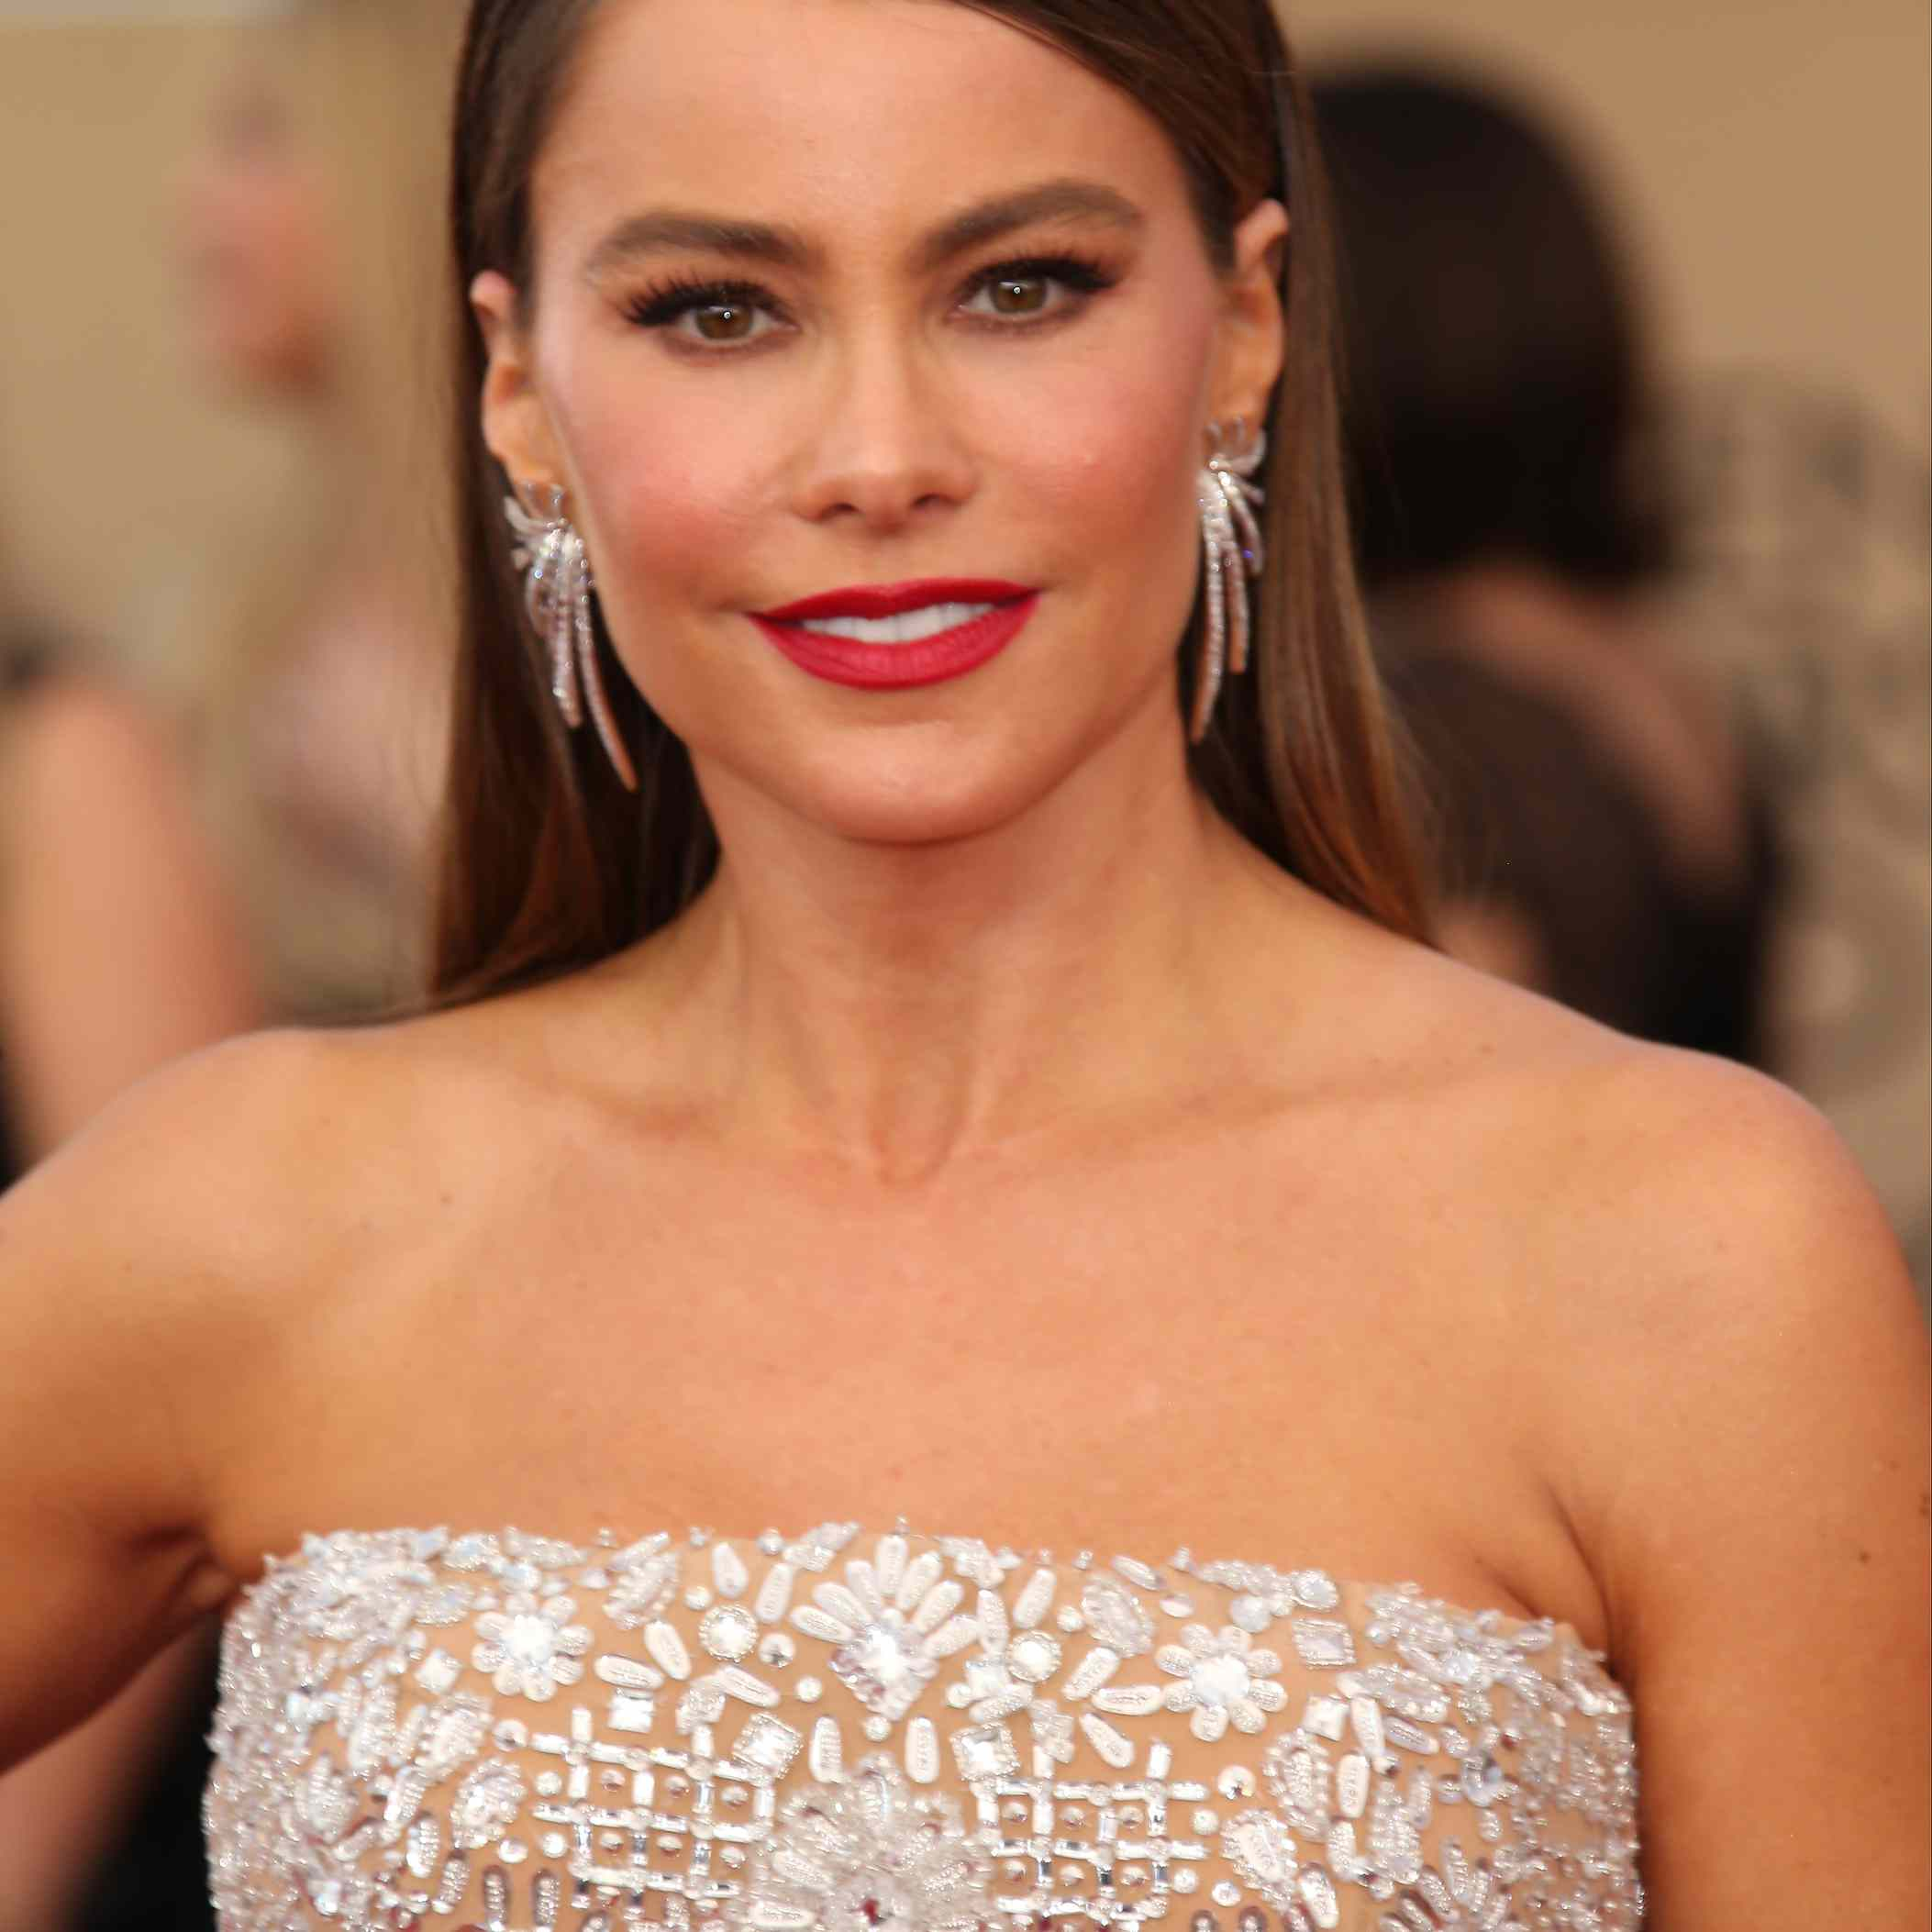 Sofia Vergara on the red carpet at the 23rd Annual Screen Actors Guild Awards